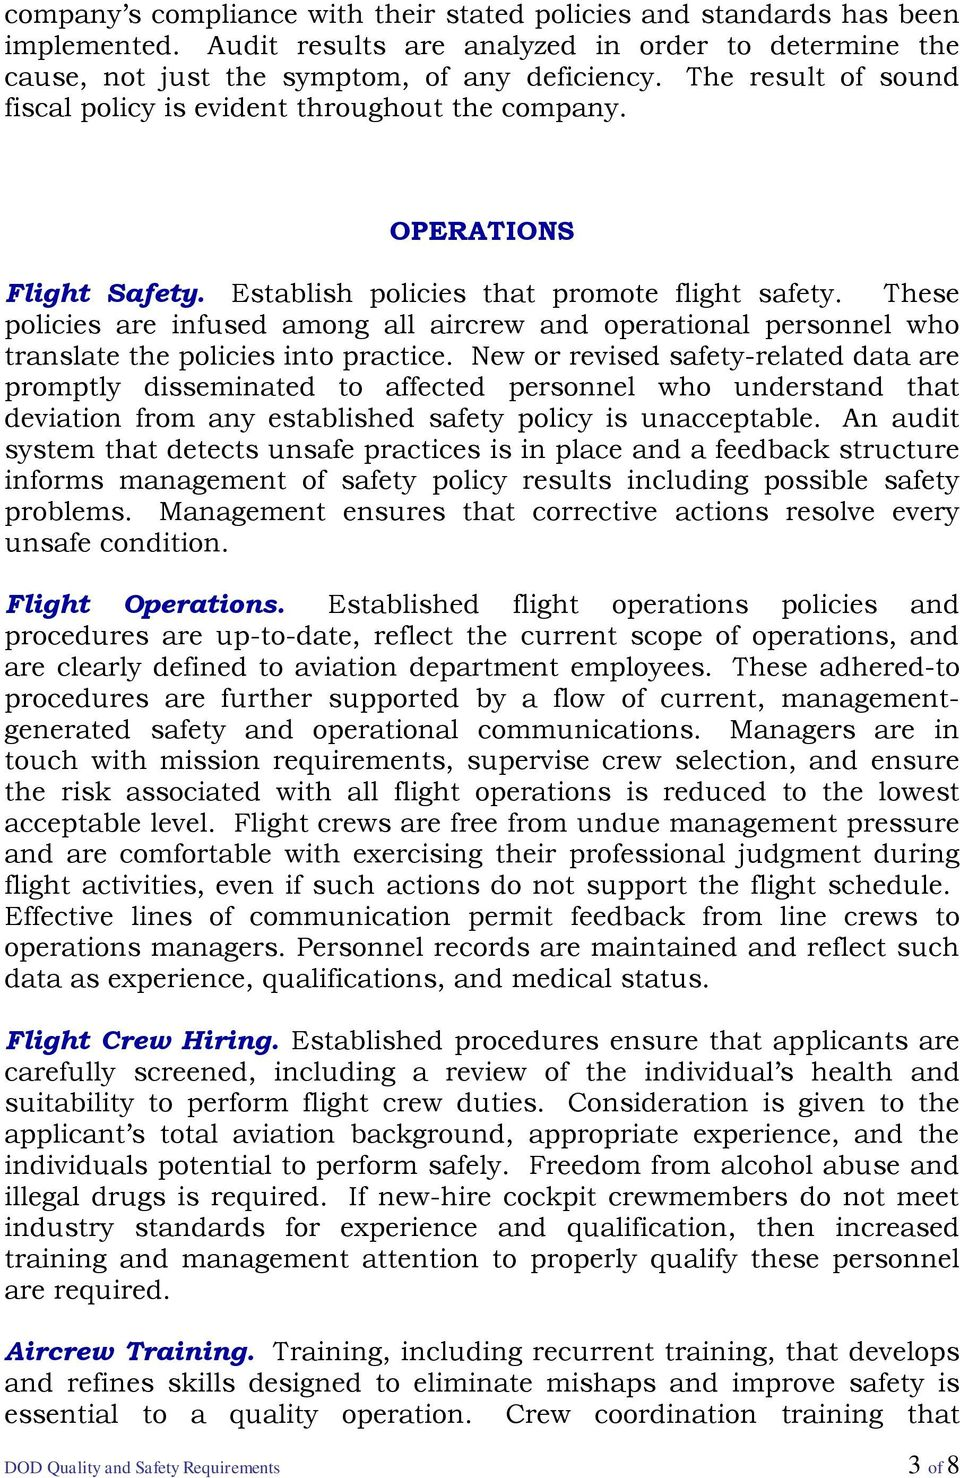 These policies are infused among all aircrew and operational personnel who translate the policies into practice.